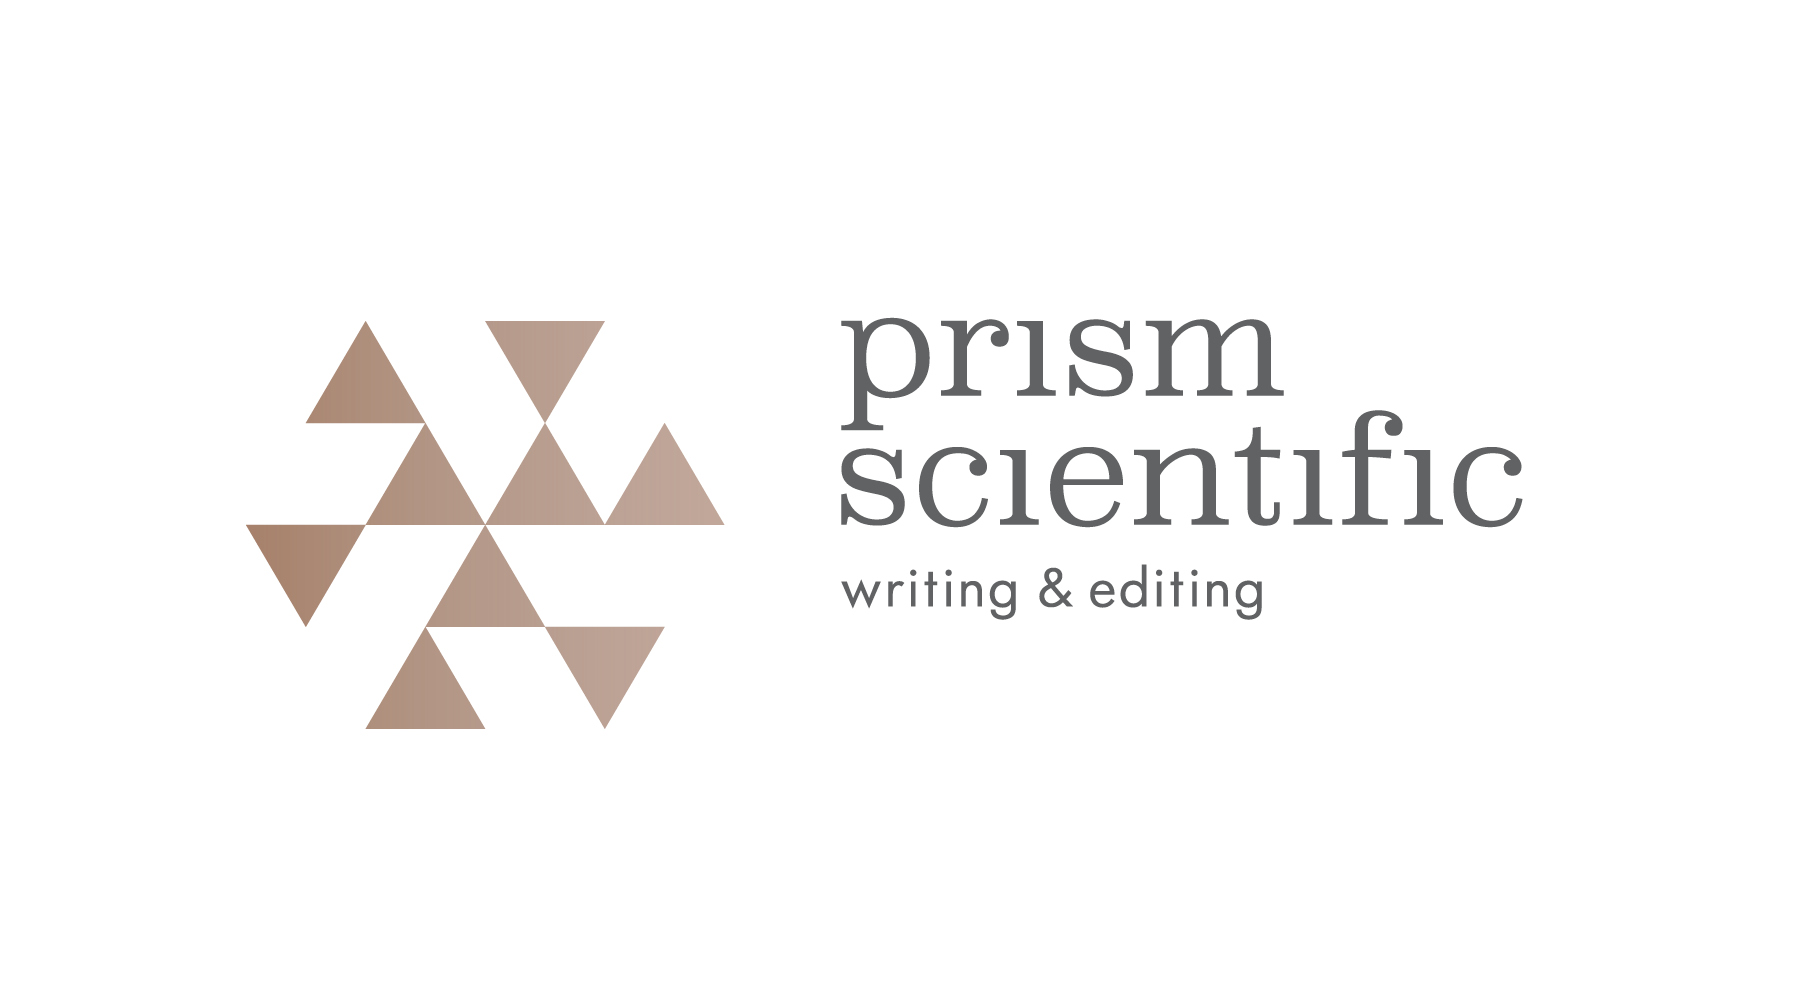 prismscientific logo design identité